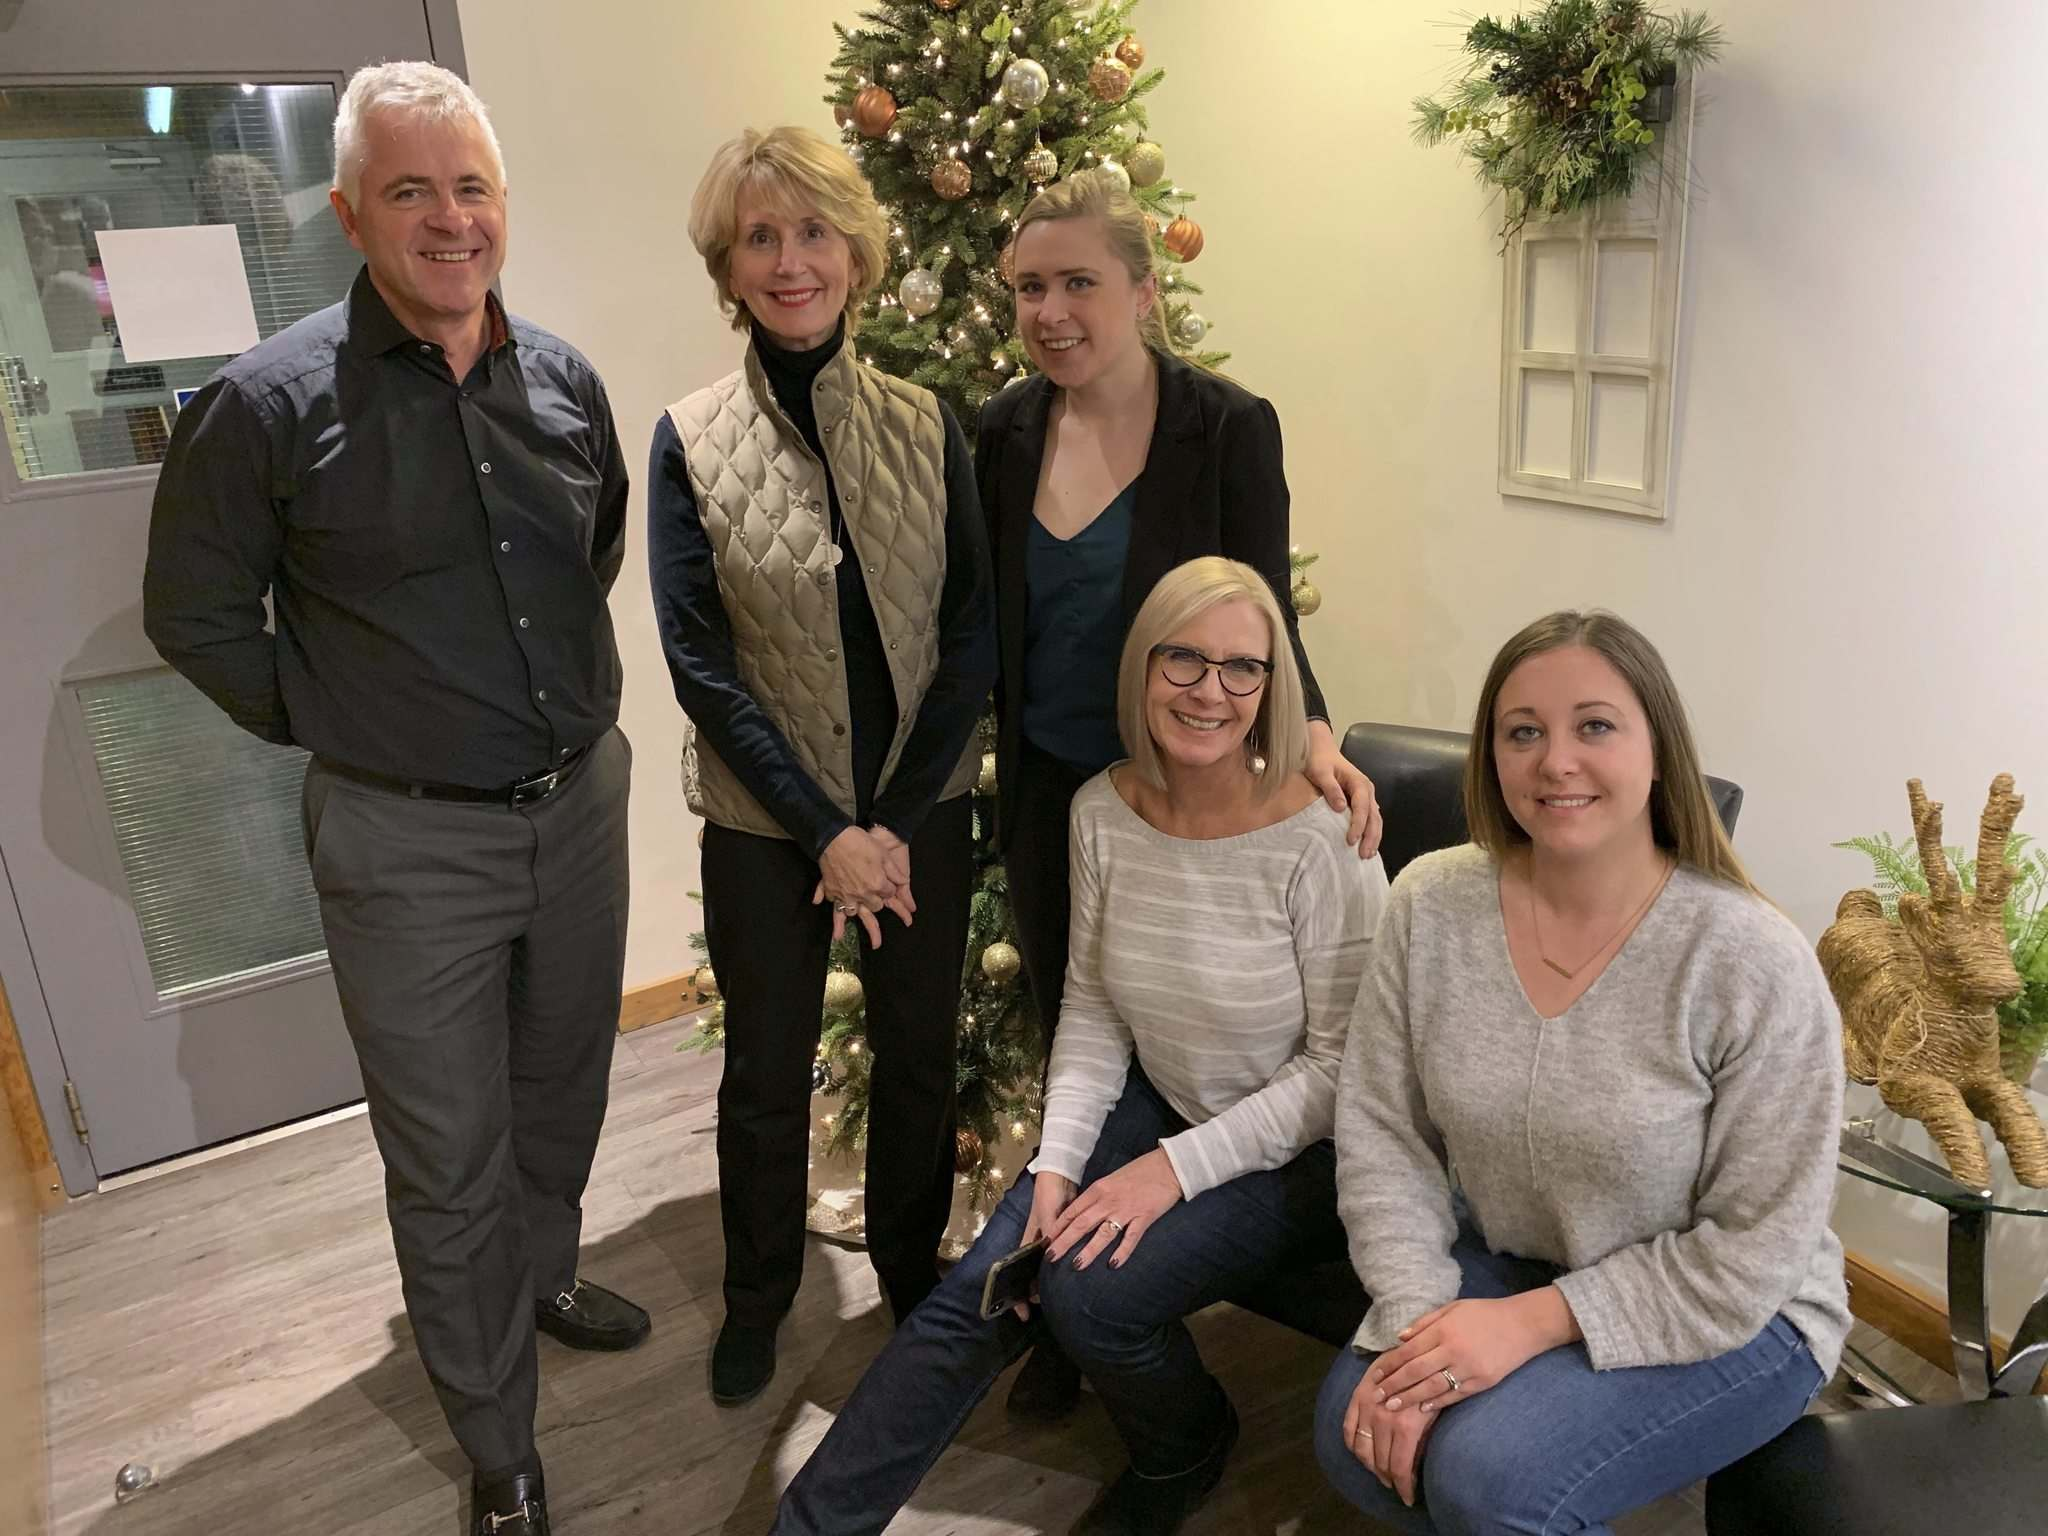 Supplied</p><p>The Online Business Systems team (from left) Chuck Loewen, president and CEO, Ria Neuendorff, Madison Loewen, Laurie Reimer and Mira Lecker. </p></p>